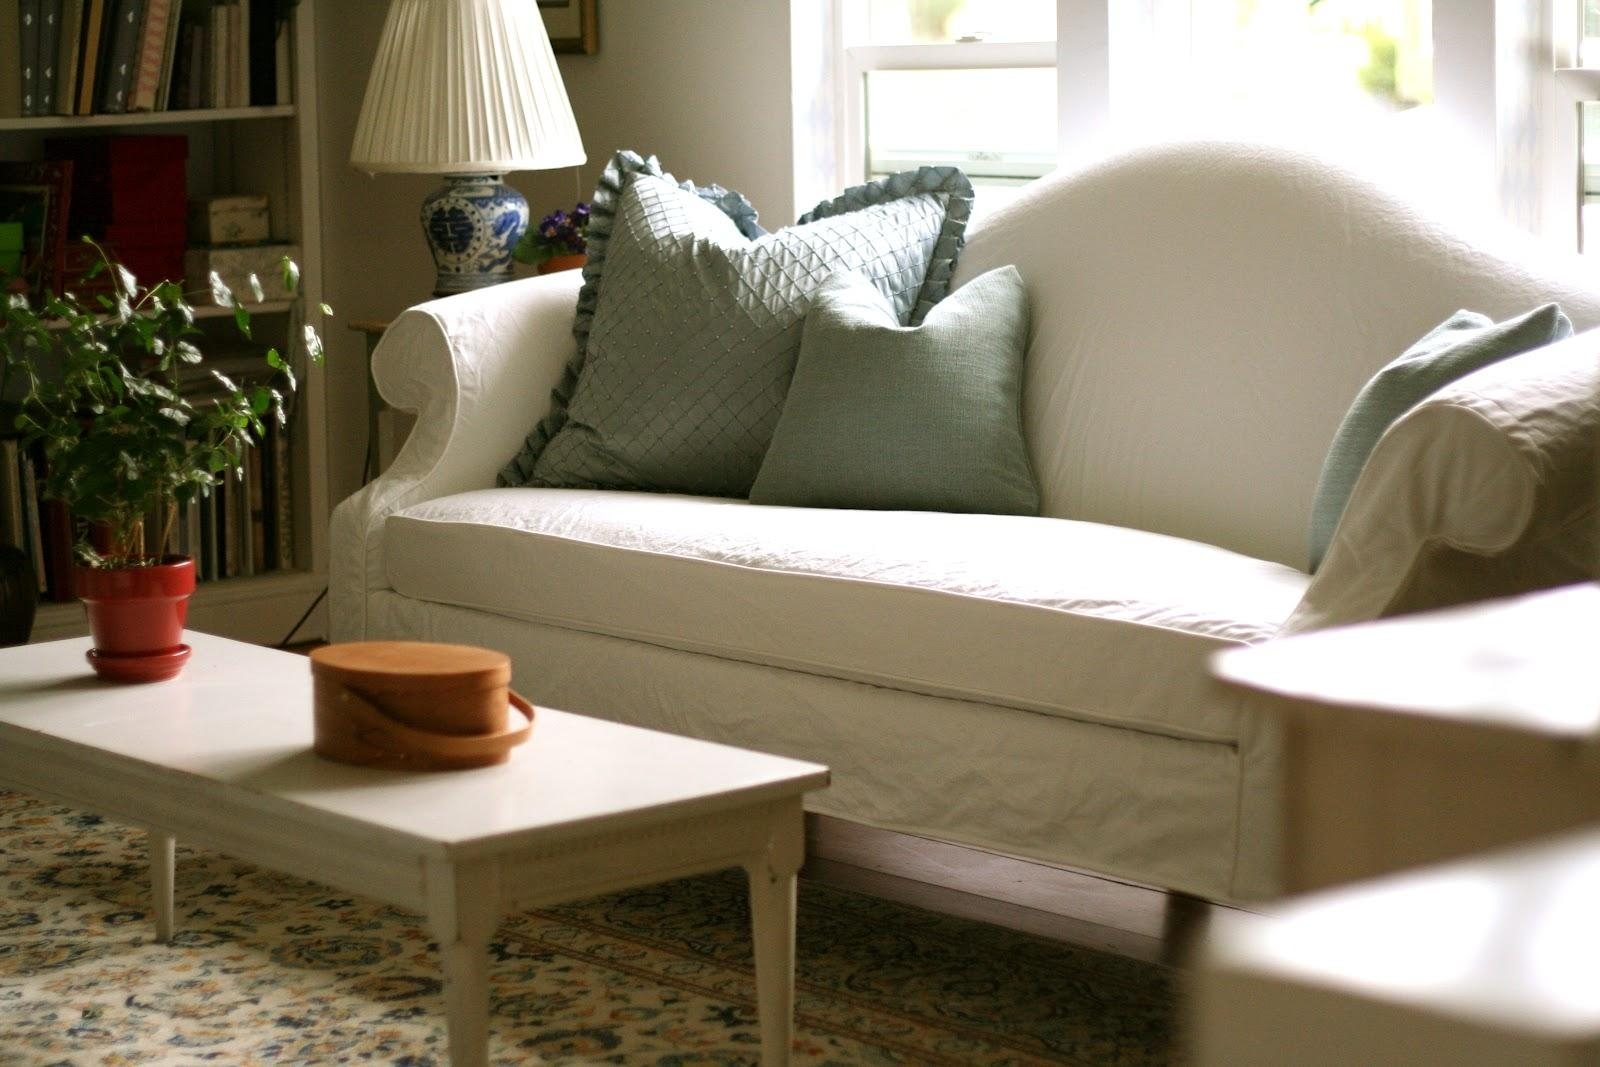 Custom Slipcoversshelley: White Camel Back Couch Intended For Camelback Sofa Slipcovers (Image 8 of 19)